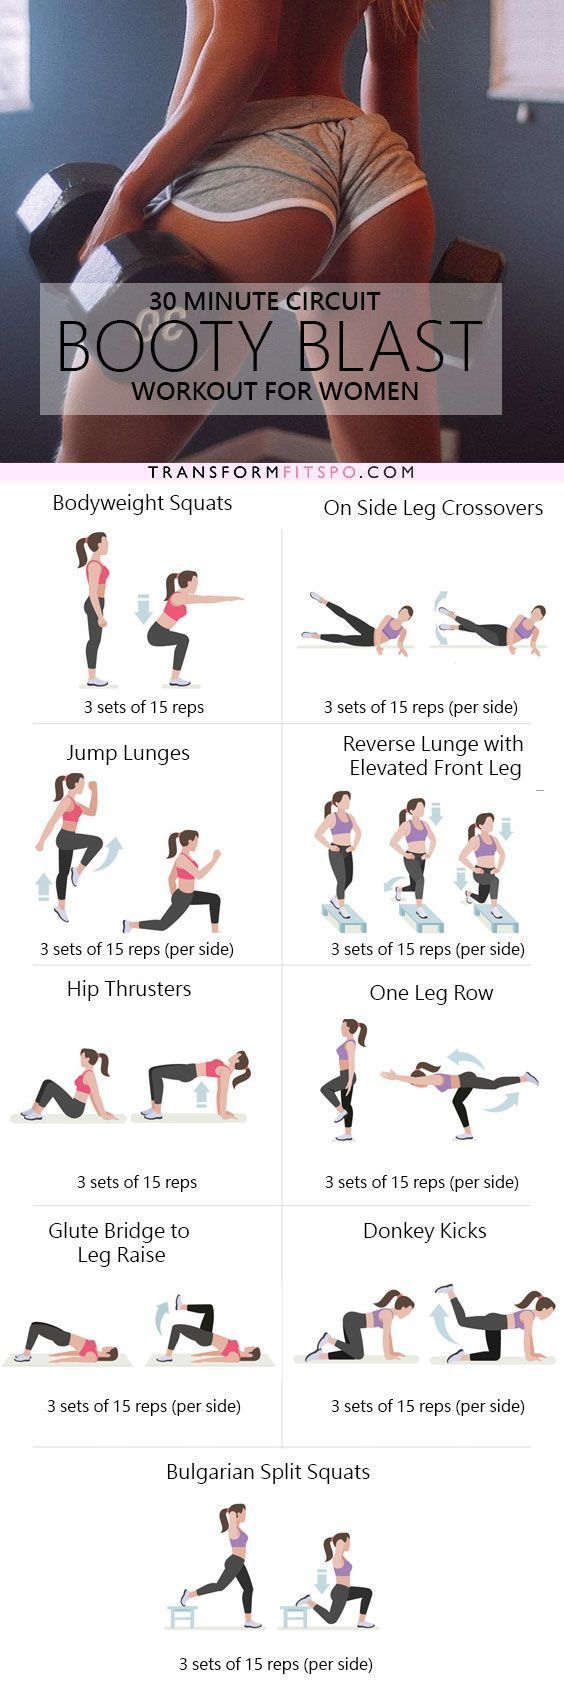 30 Minute Booty Blast Workout for Women